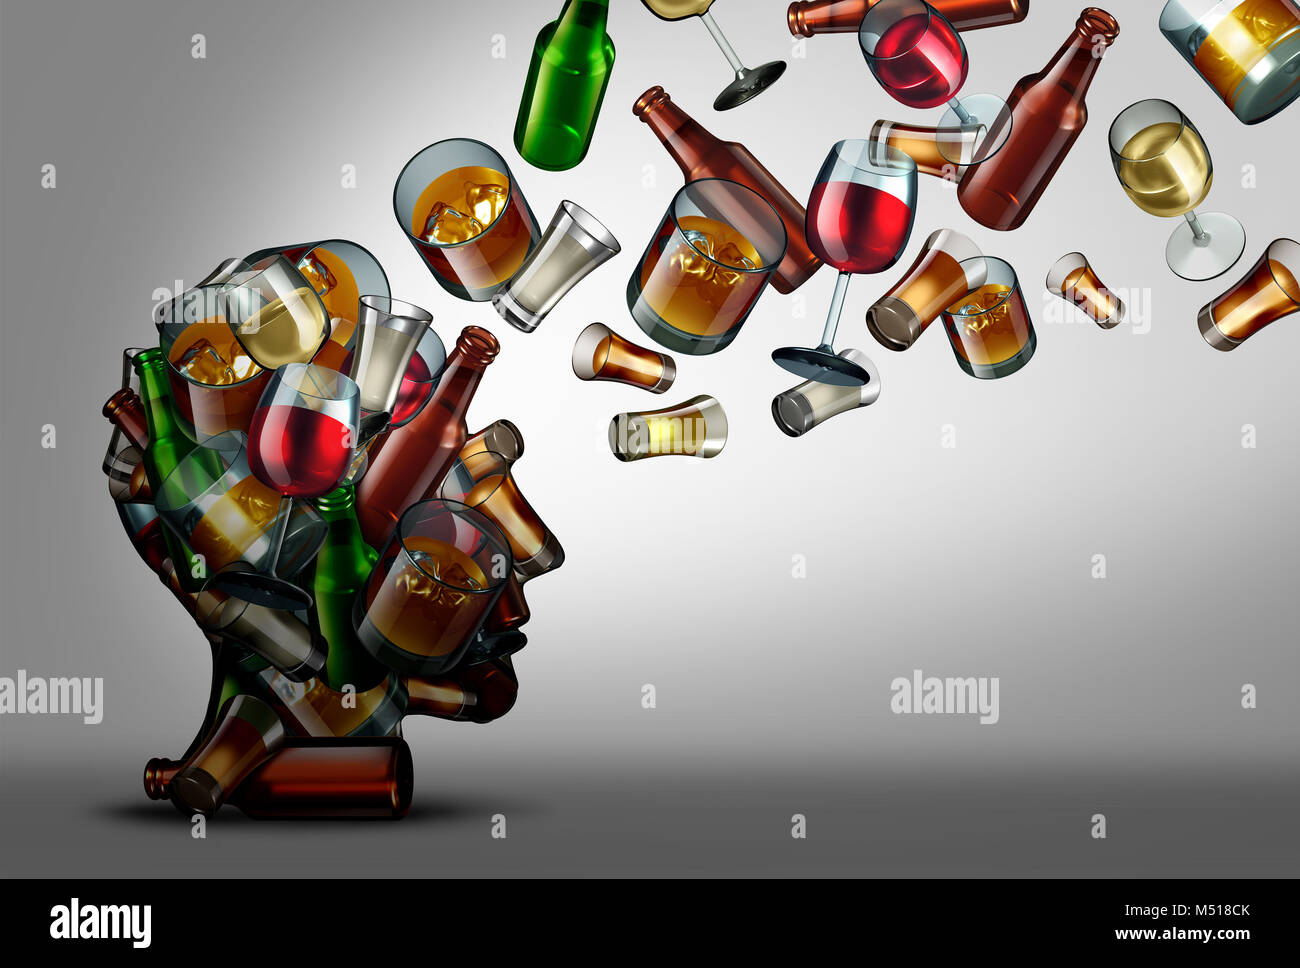 Alcohol education and awareness of the risk or dangers of drink consumption as a 3D illustration. - Stock Image